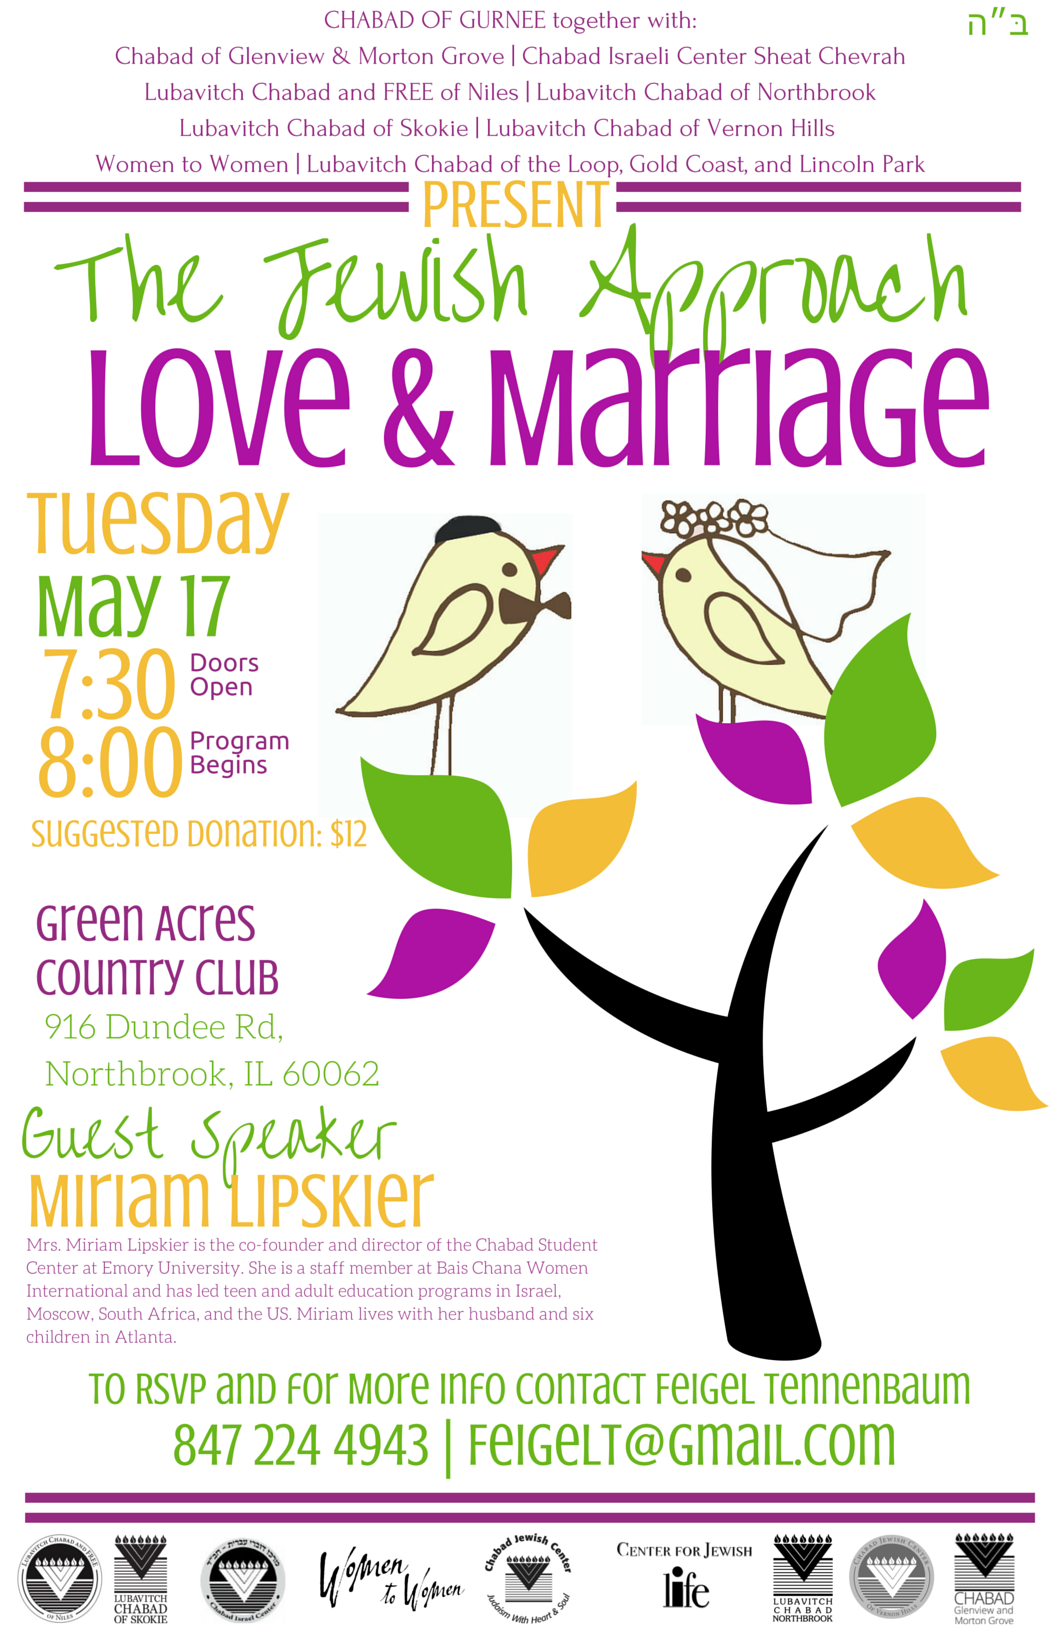 Gurnee love and marriage 11X17.png